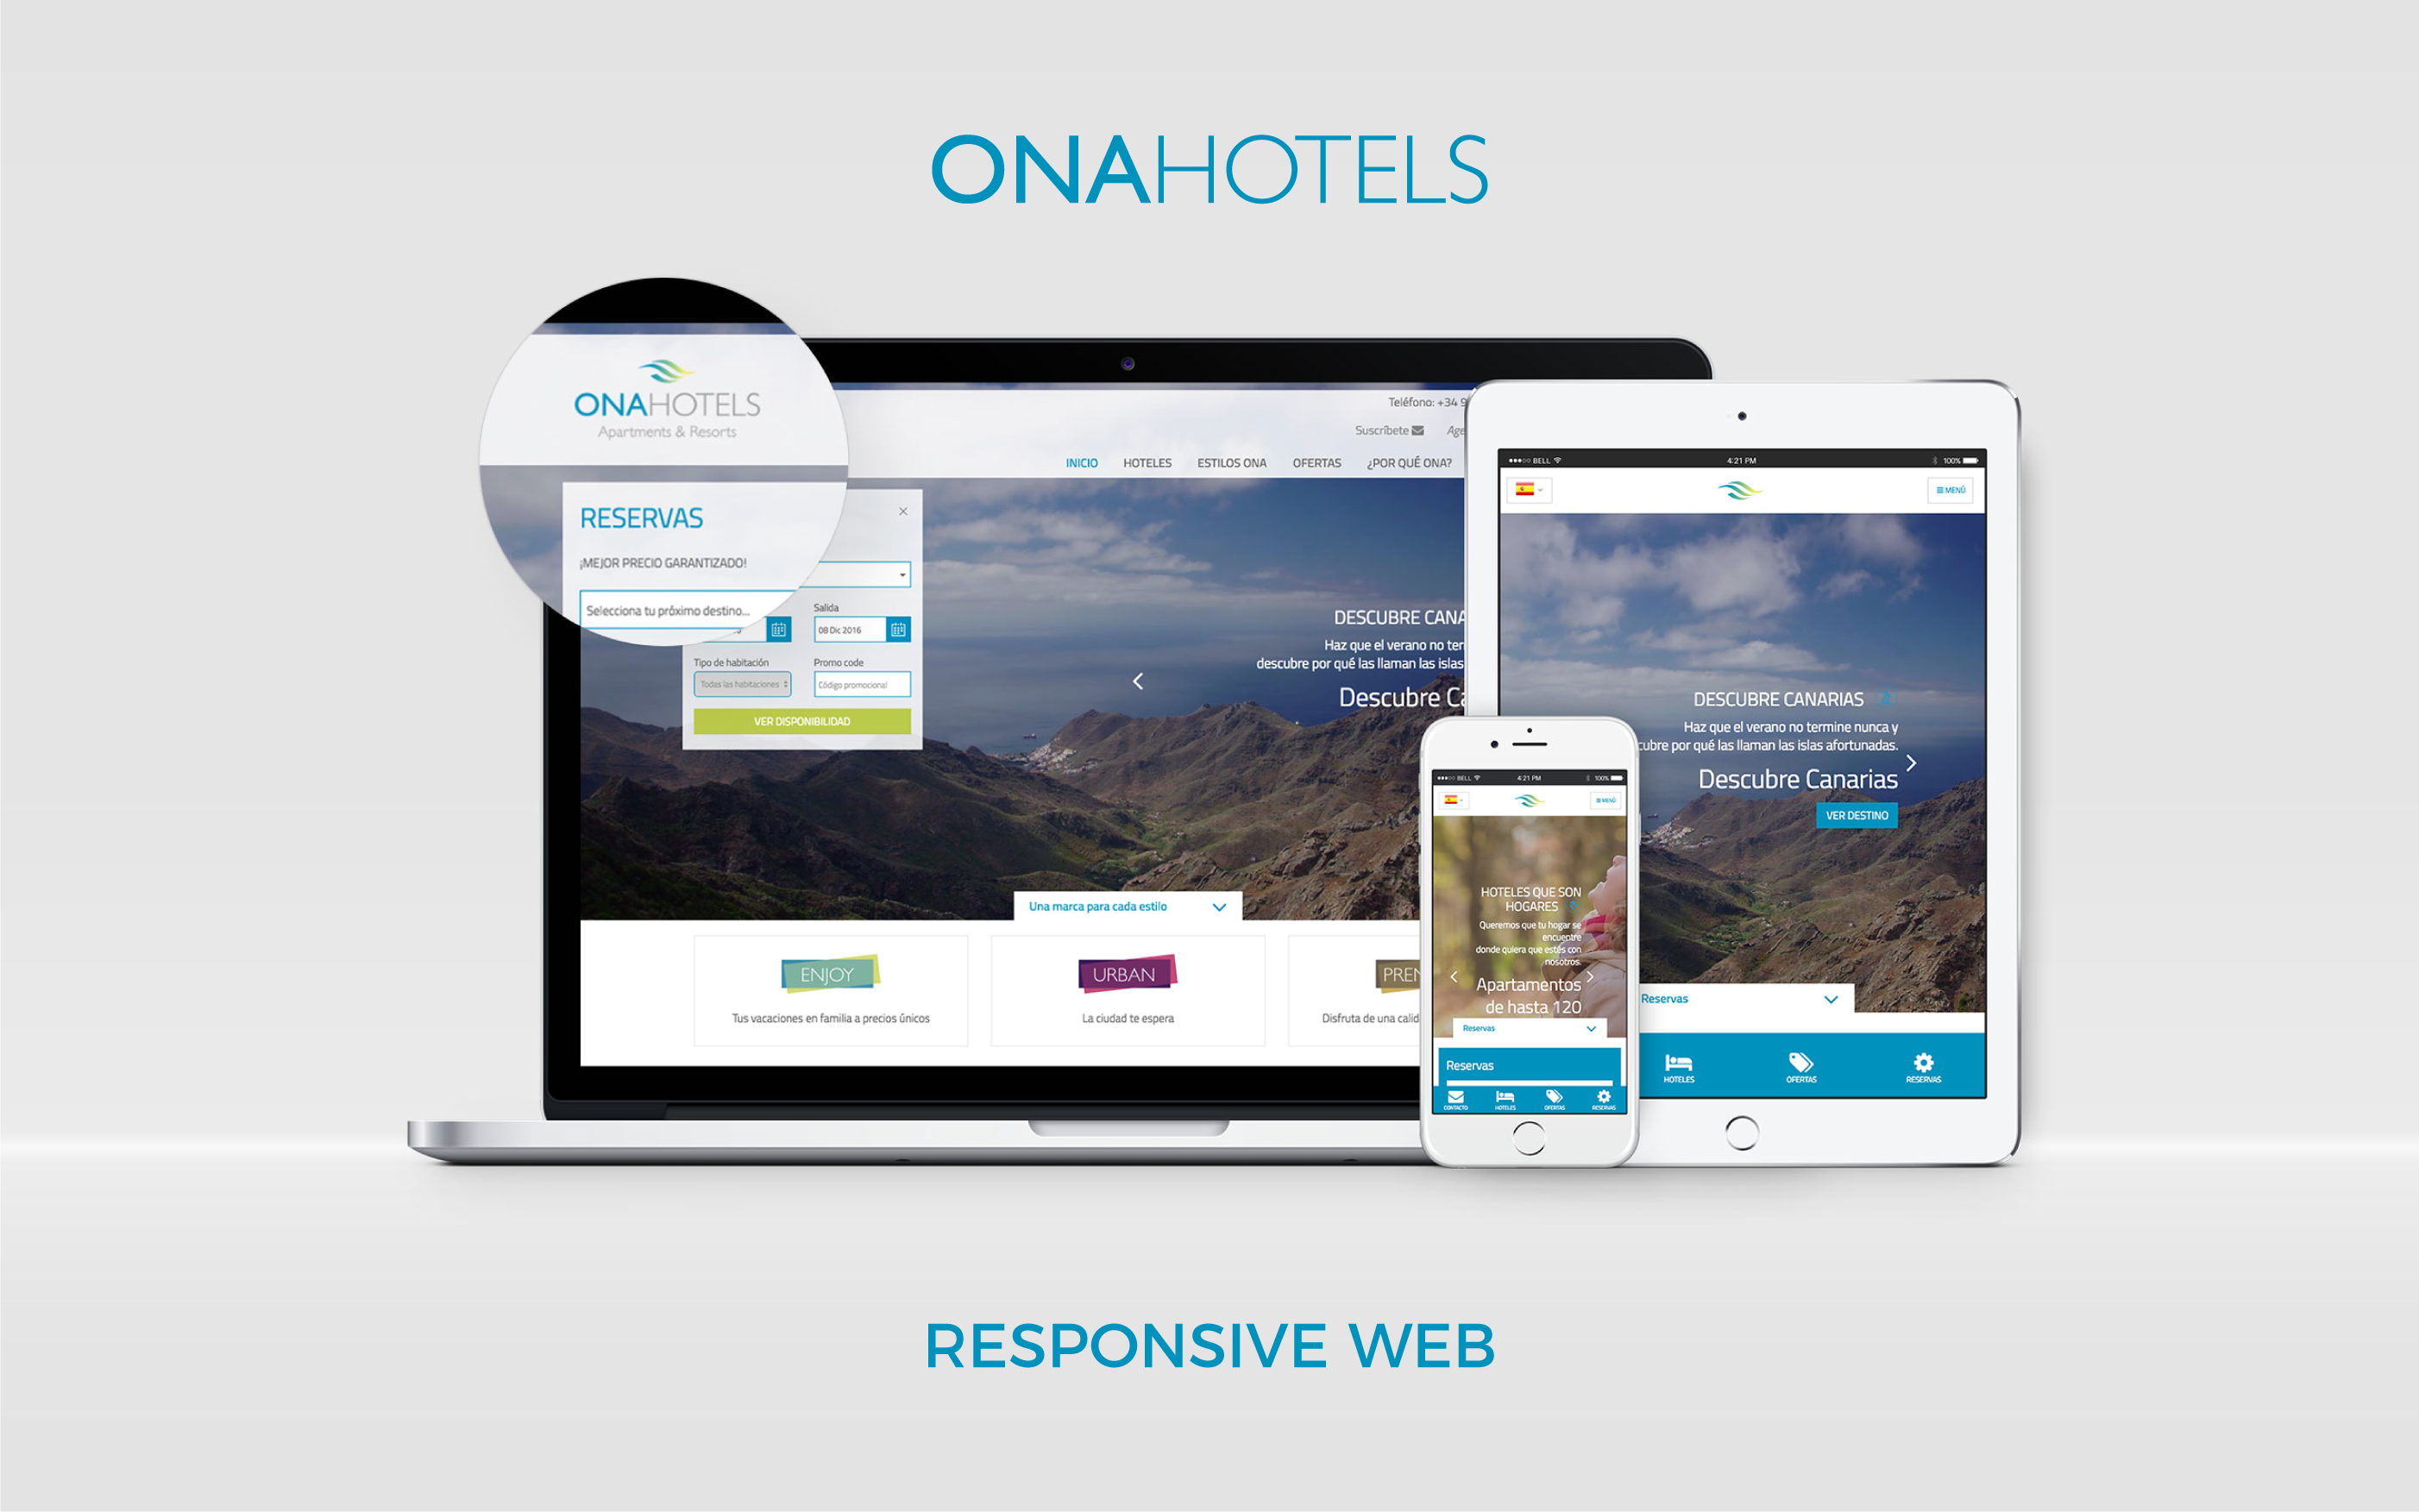 onahotels.com - responsive web